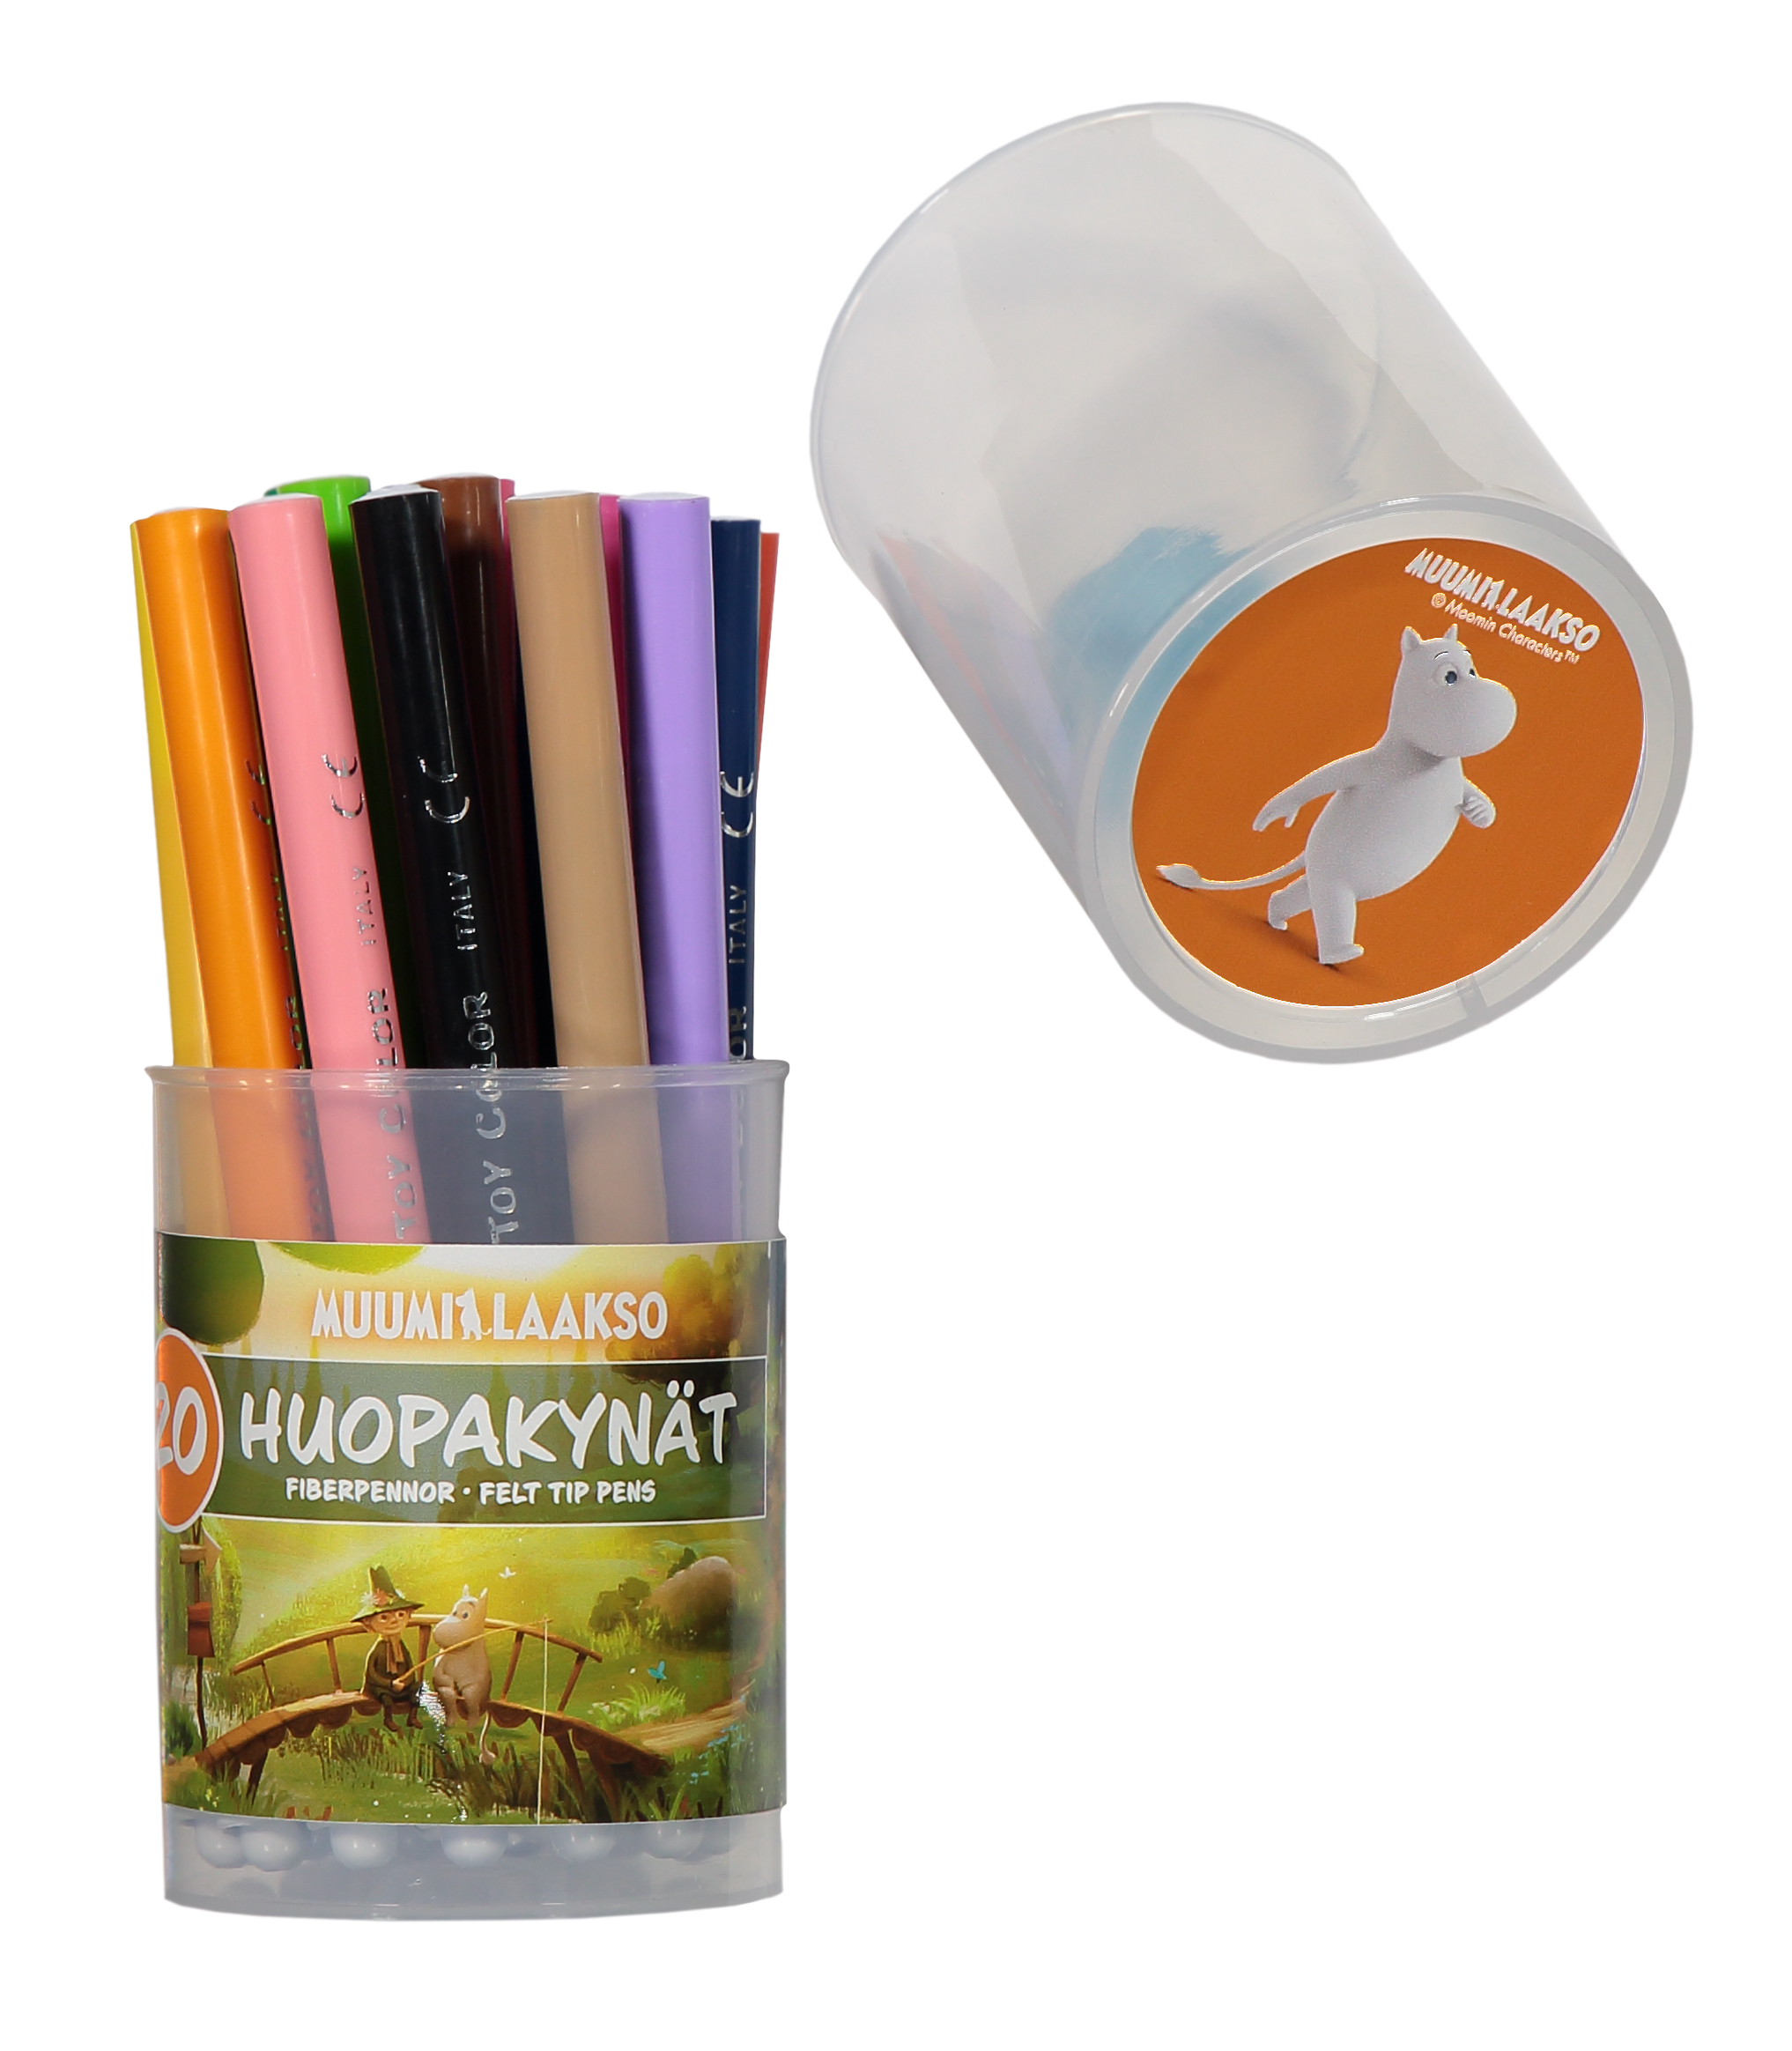 Anglo-Nordic Moominvalley 20 felt pens in jar